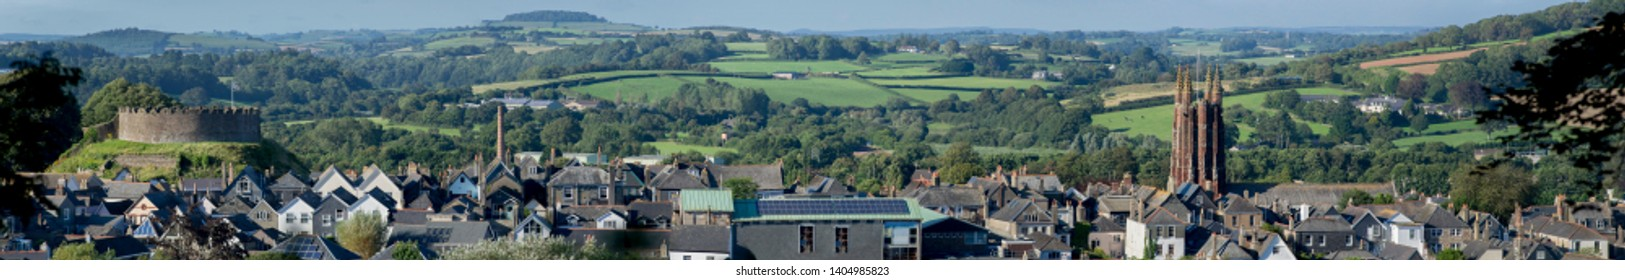 A panoramic image shows the town of Totnes, Devon, with its castle and church